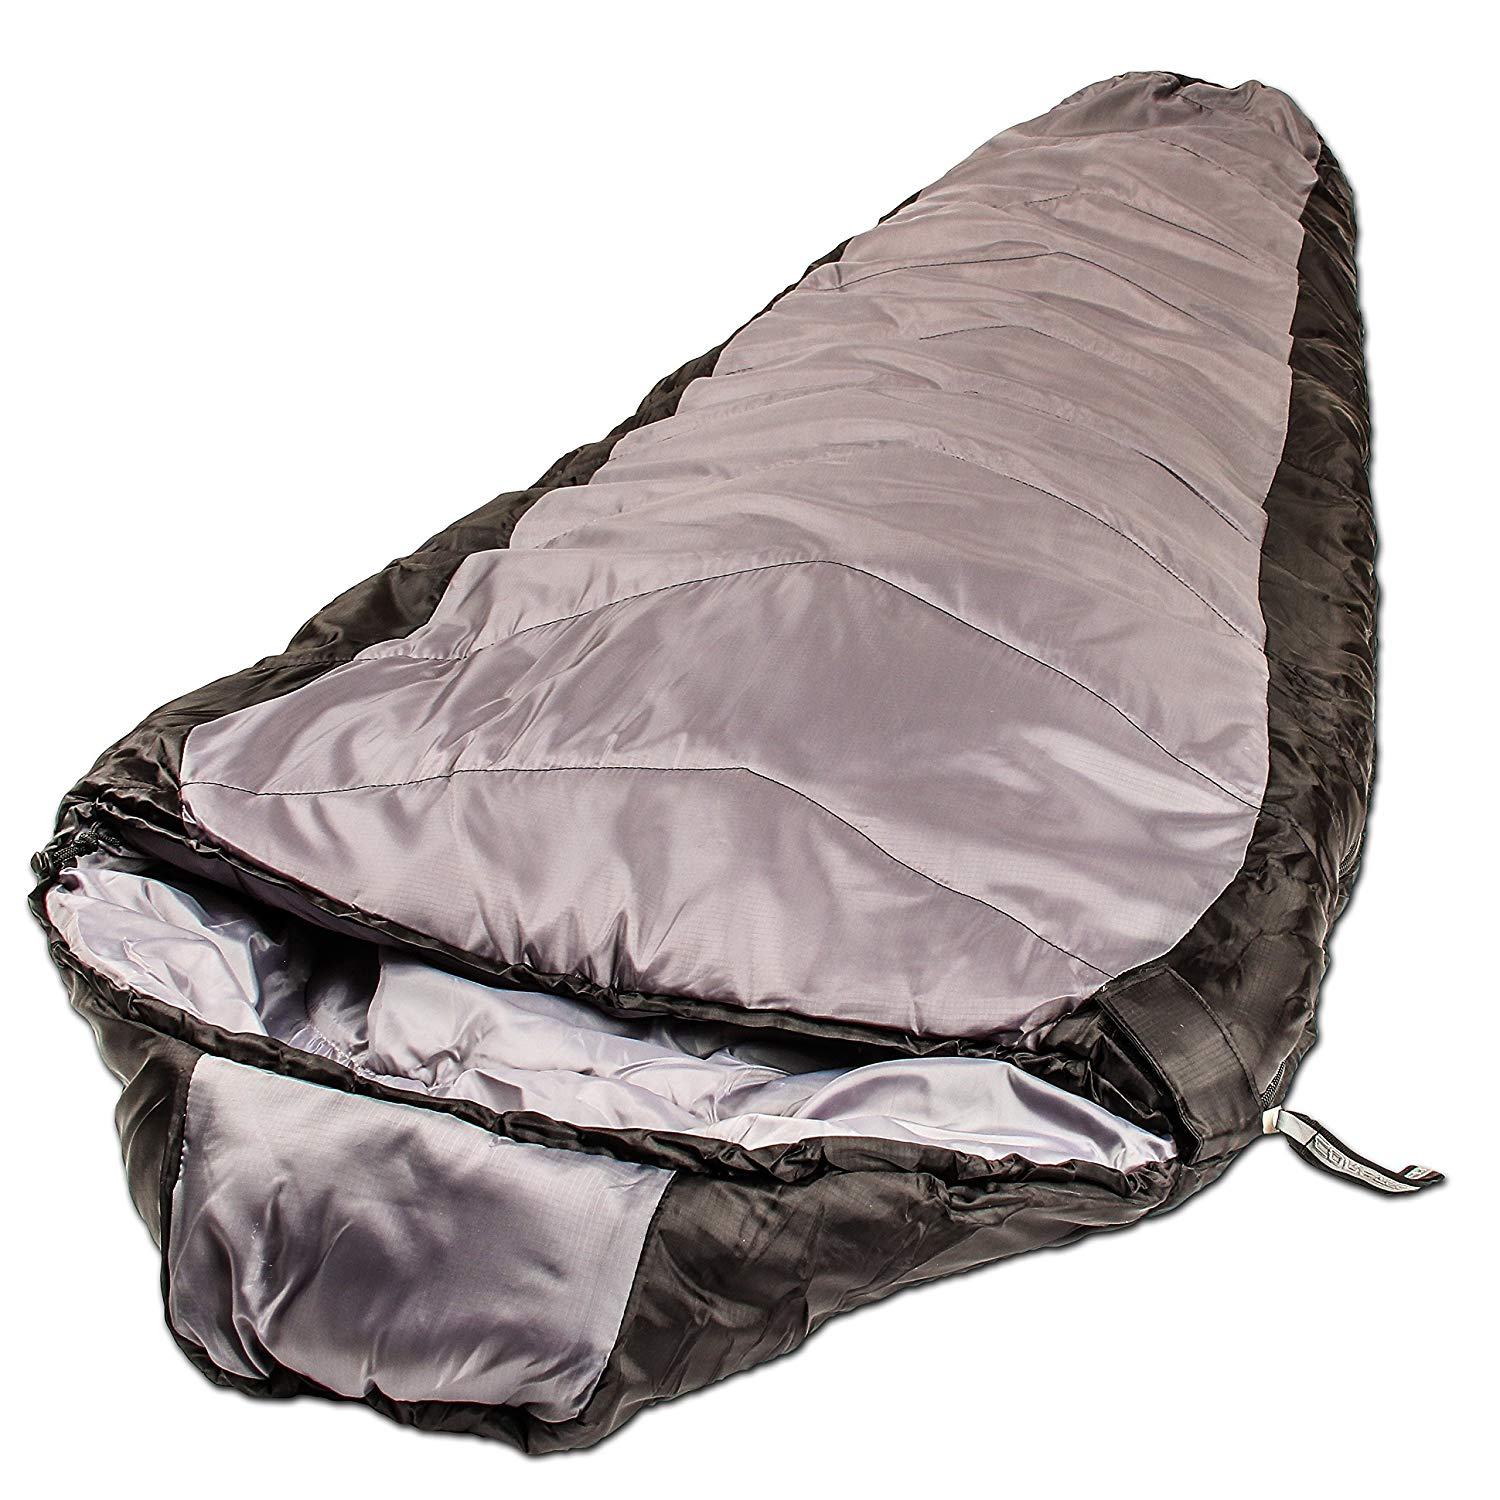 30-40°F Tactical Operations Best Backpacking Sleeping Bag under 100